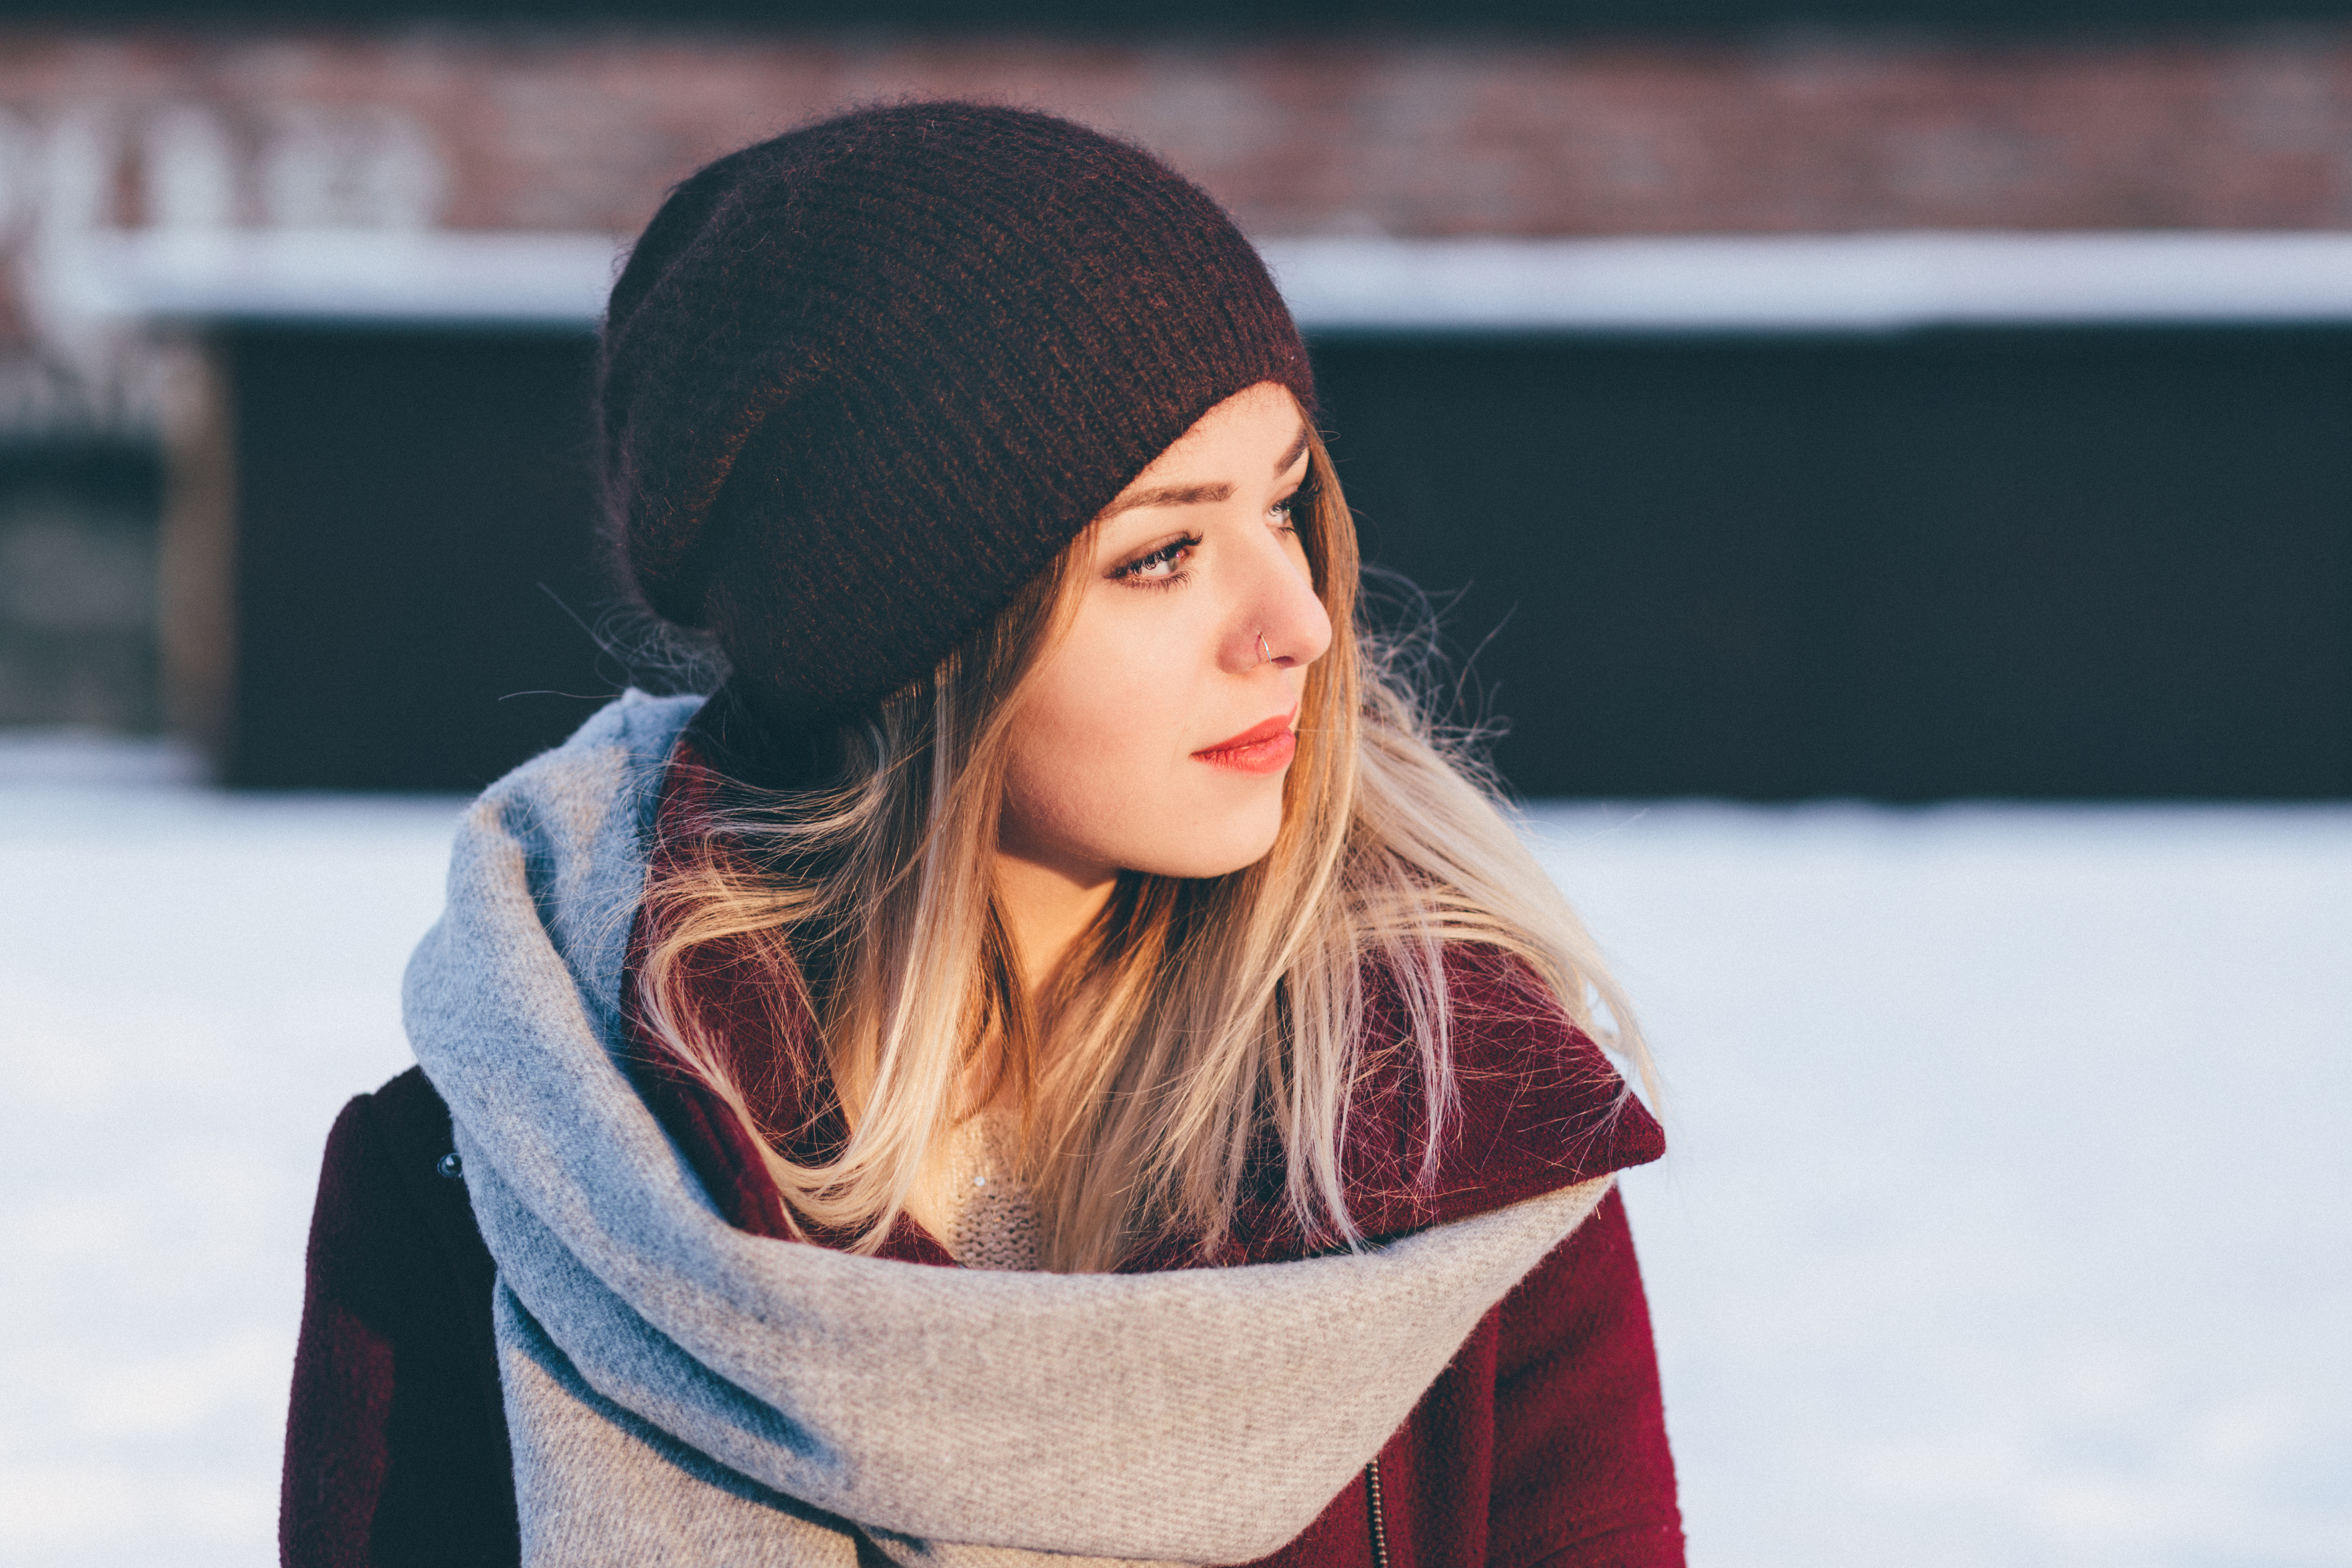 A girl winter portrait, Beautiful, Style, Scarf, Scene, HQ Photo